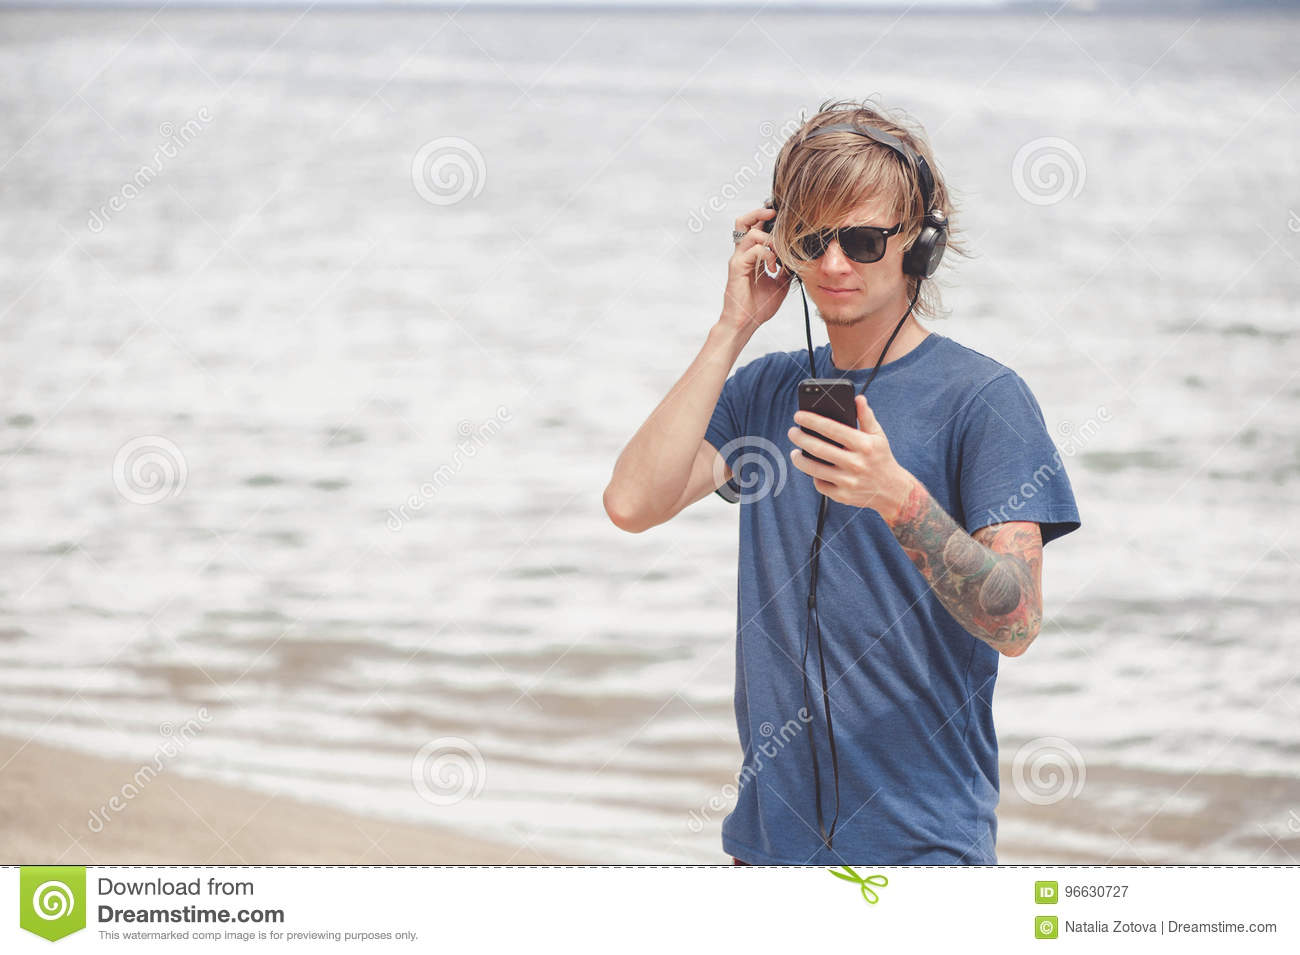 f18341fc8c34 Portrait Of Young Man In Headphones And Sunglasses At The Beach ...